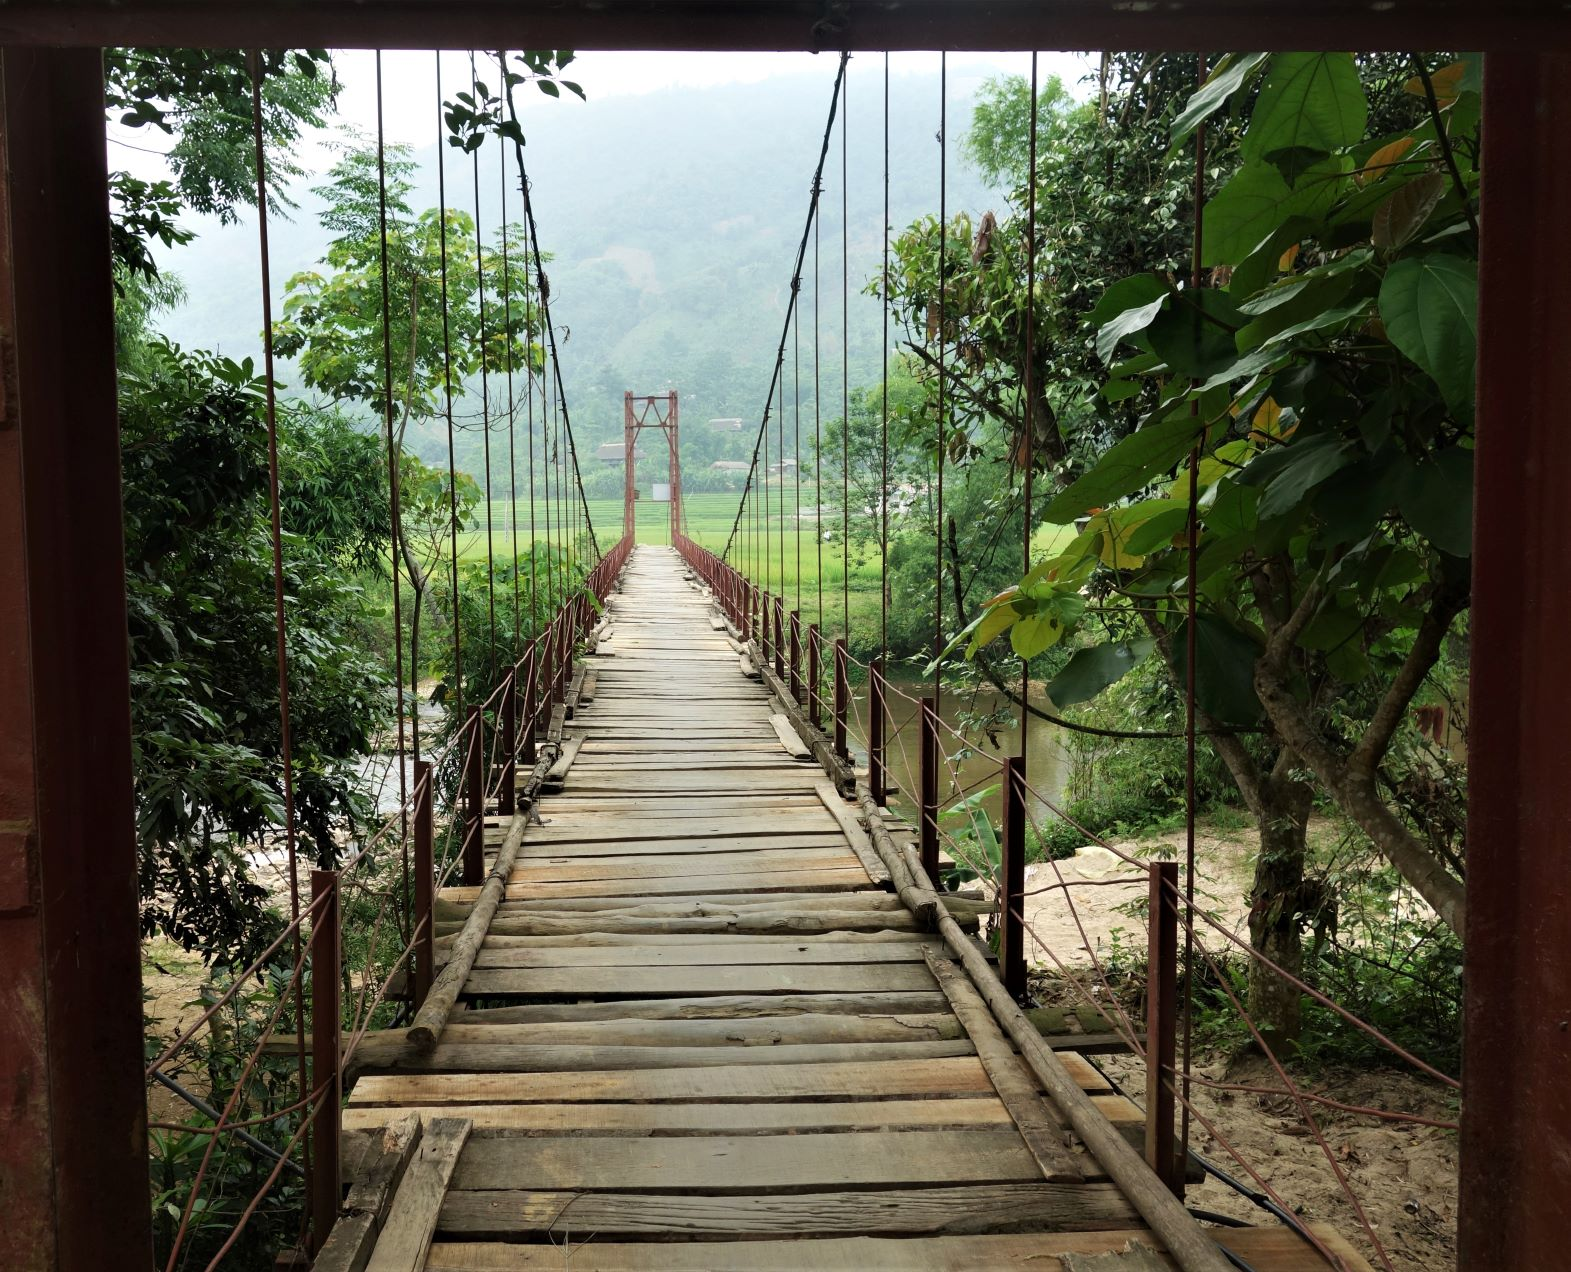 Ha Giang Vietnam, The Place of the H'mong, Karst Formations, & INCREDIBLE Views